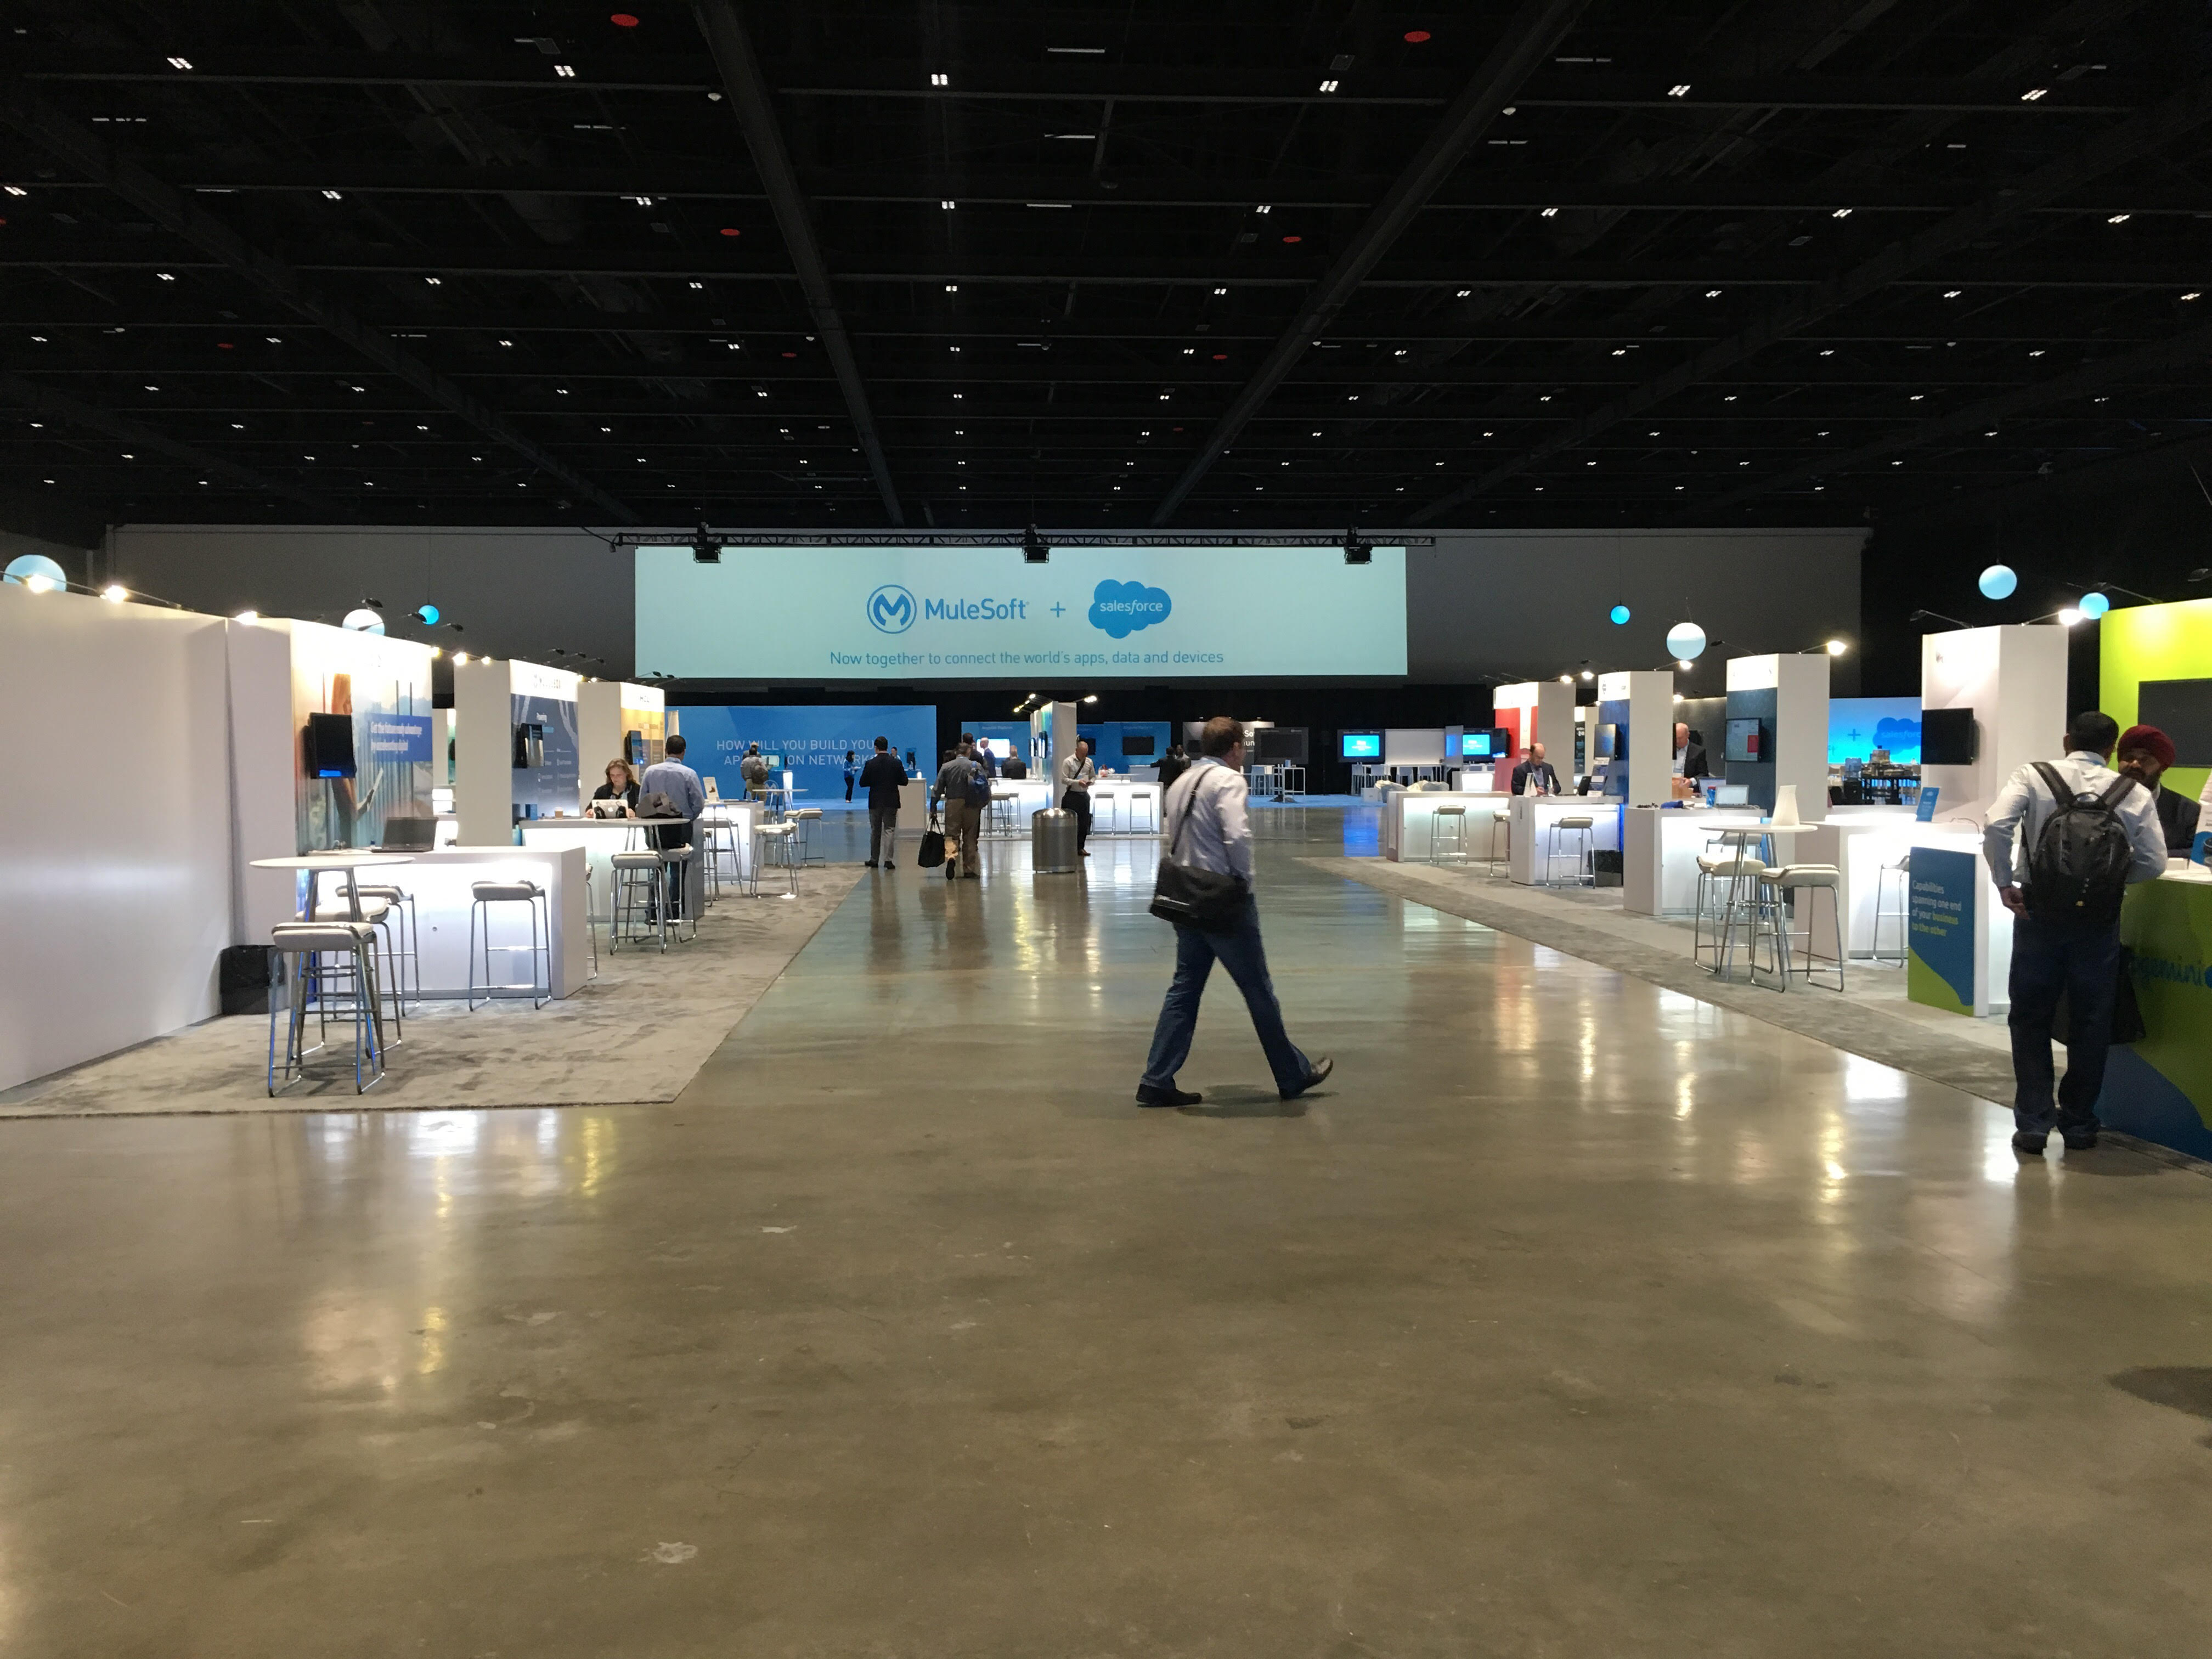 MuleSoft Expo Hall.jpg